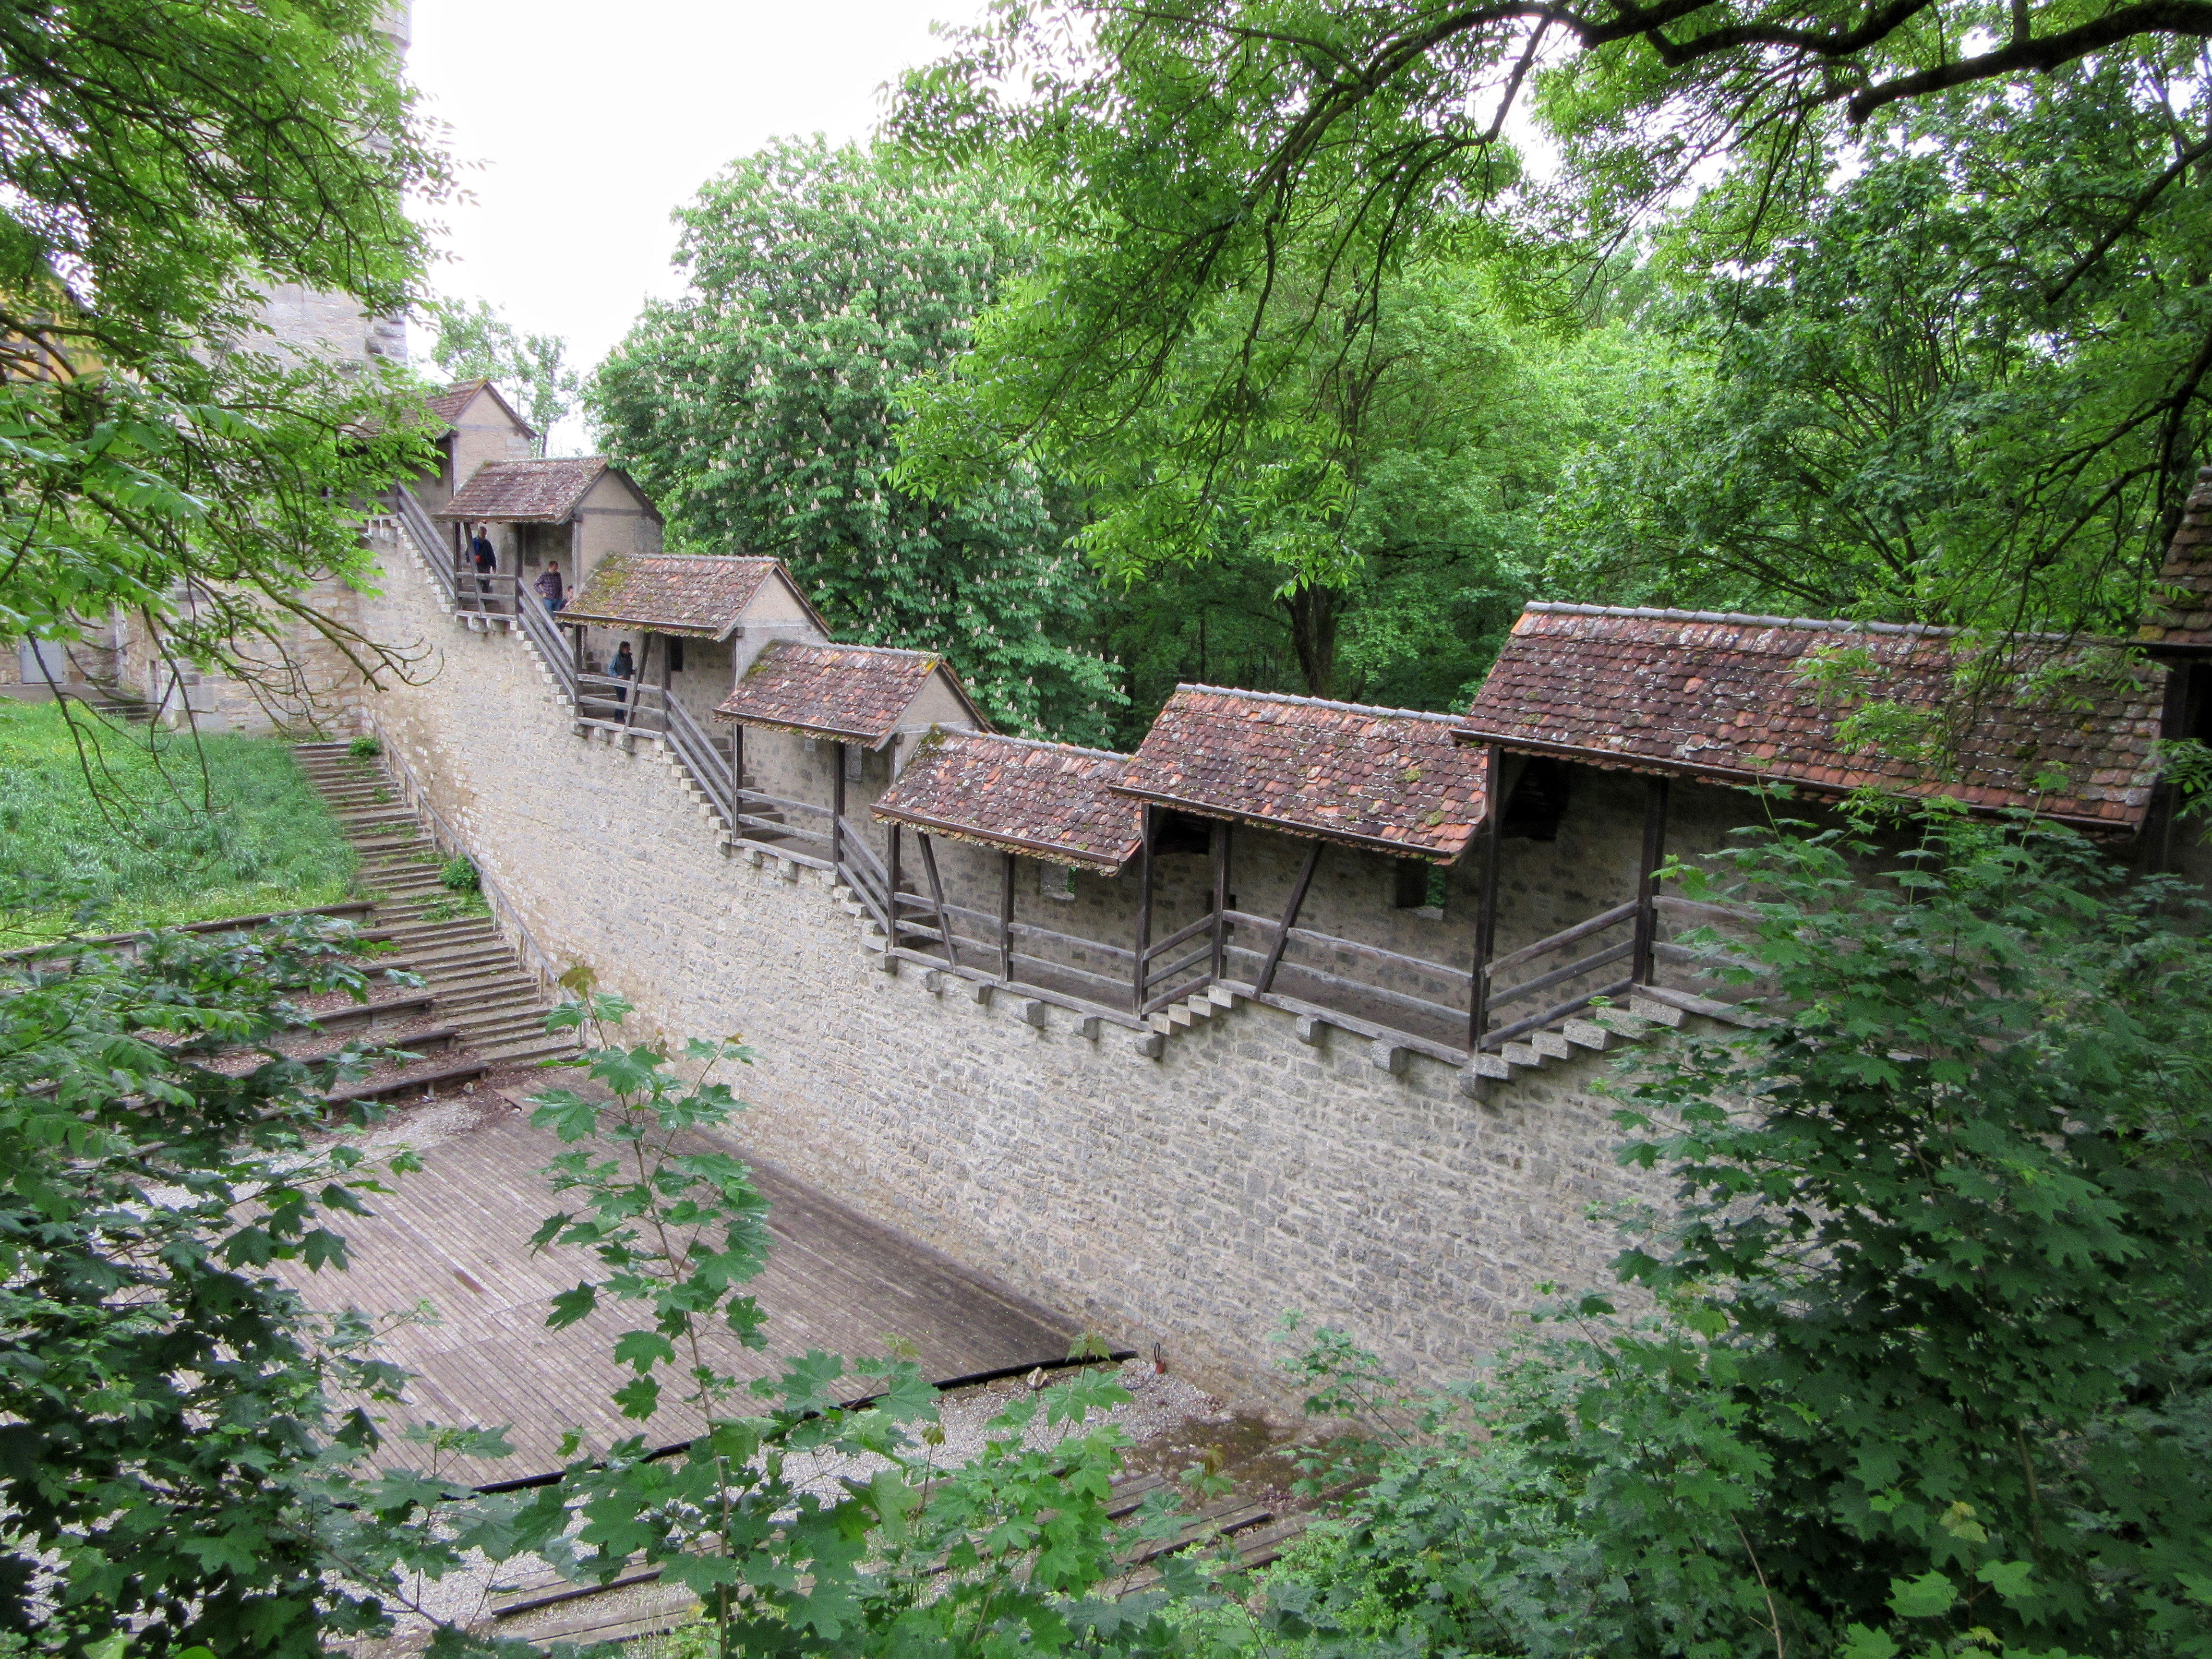 An outdoor theater area. | Walking Along the Wall of Rothenburg ob der Tauber.